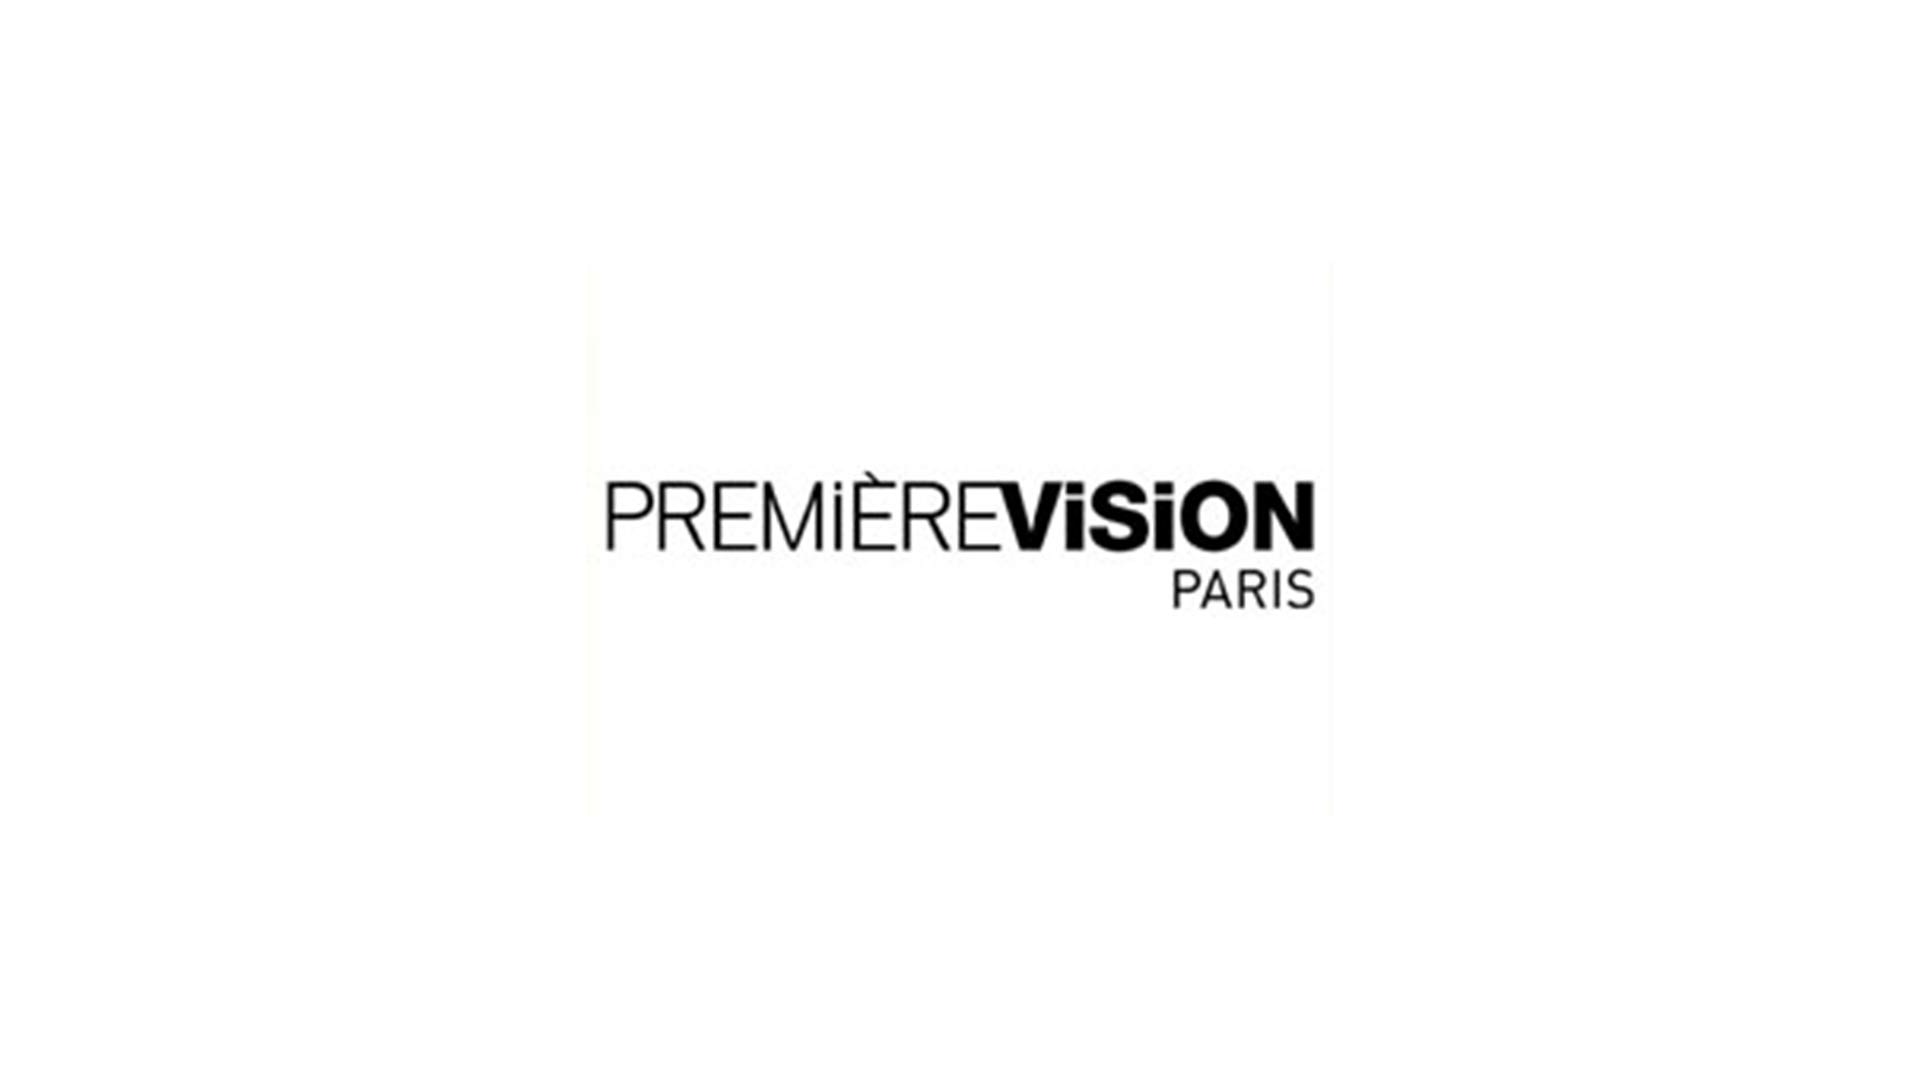 The 15th of September 2020 | PremièreVision Paris